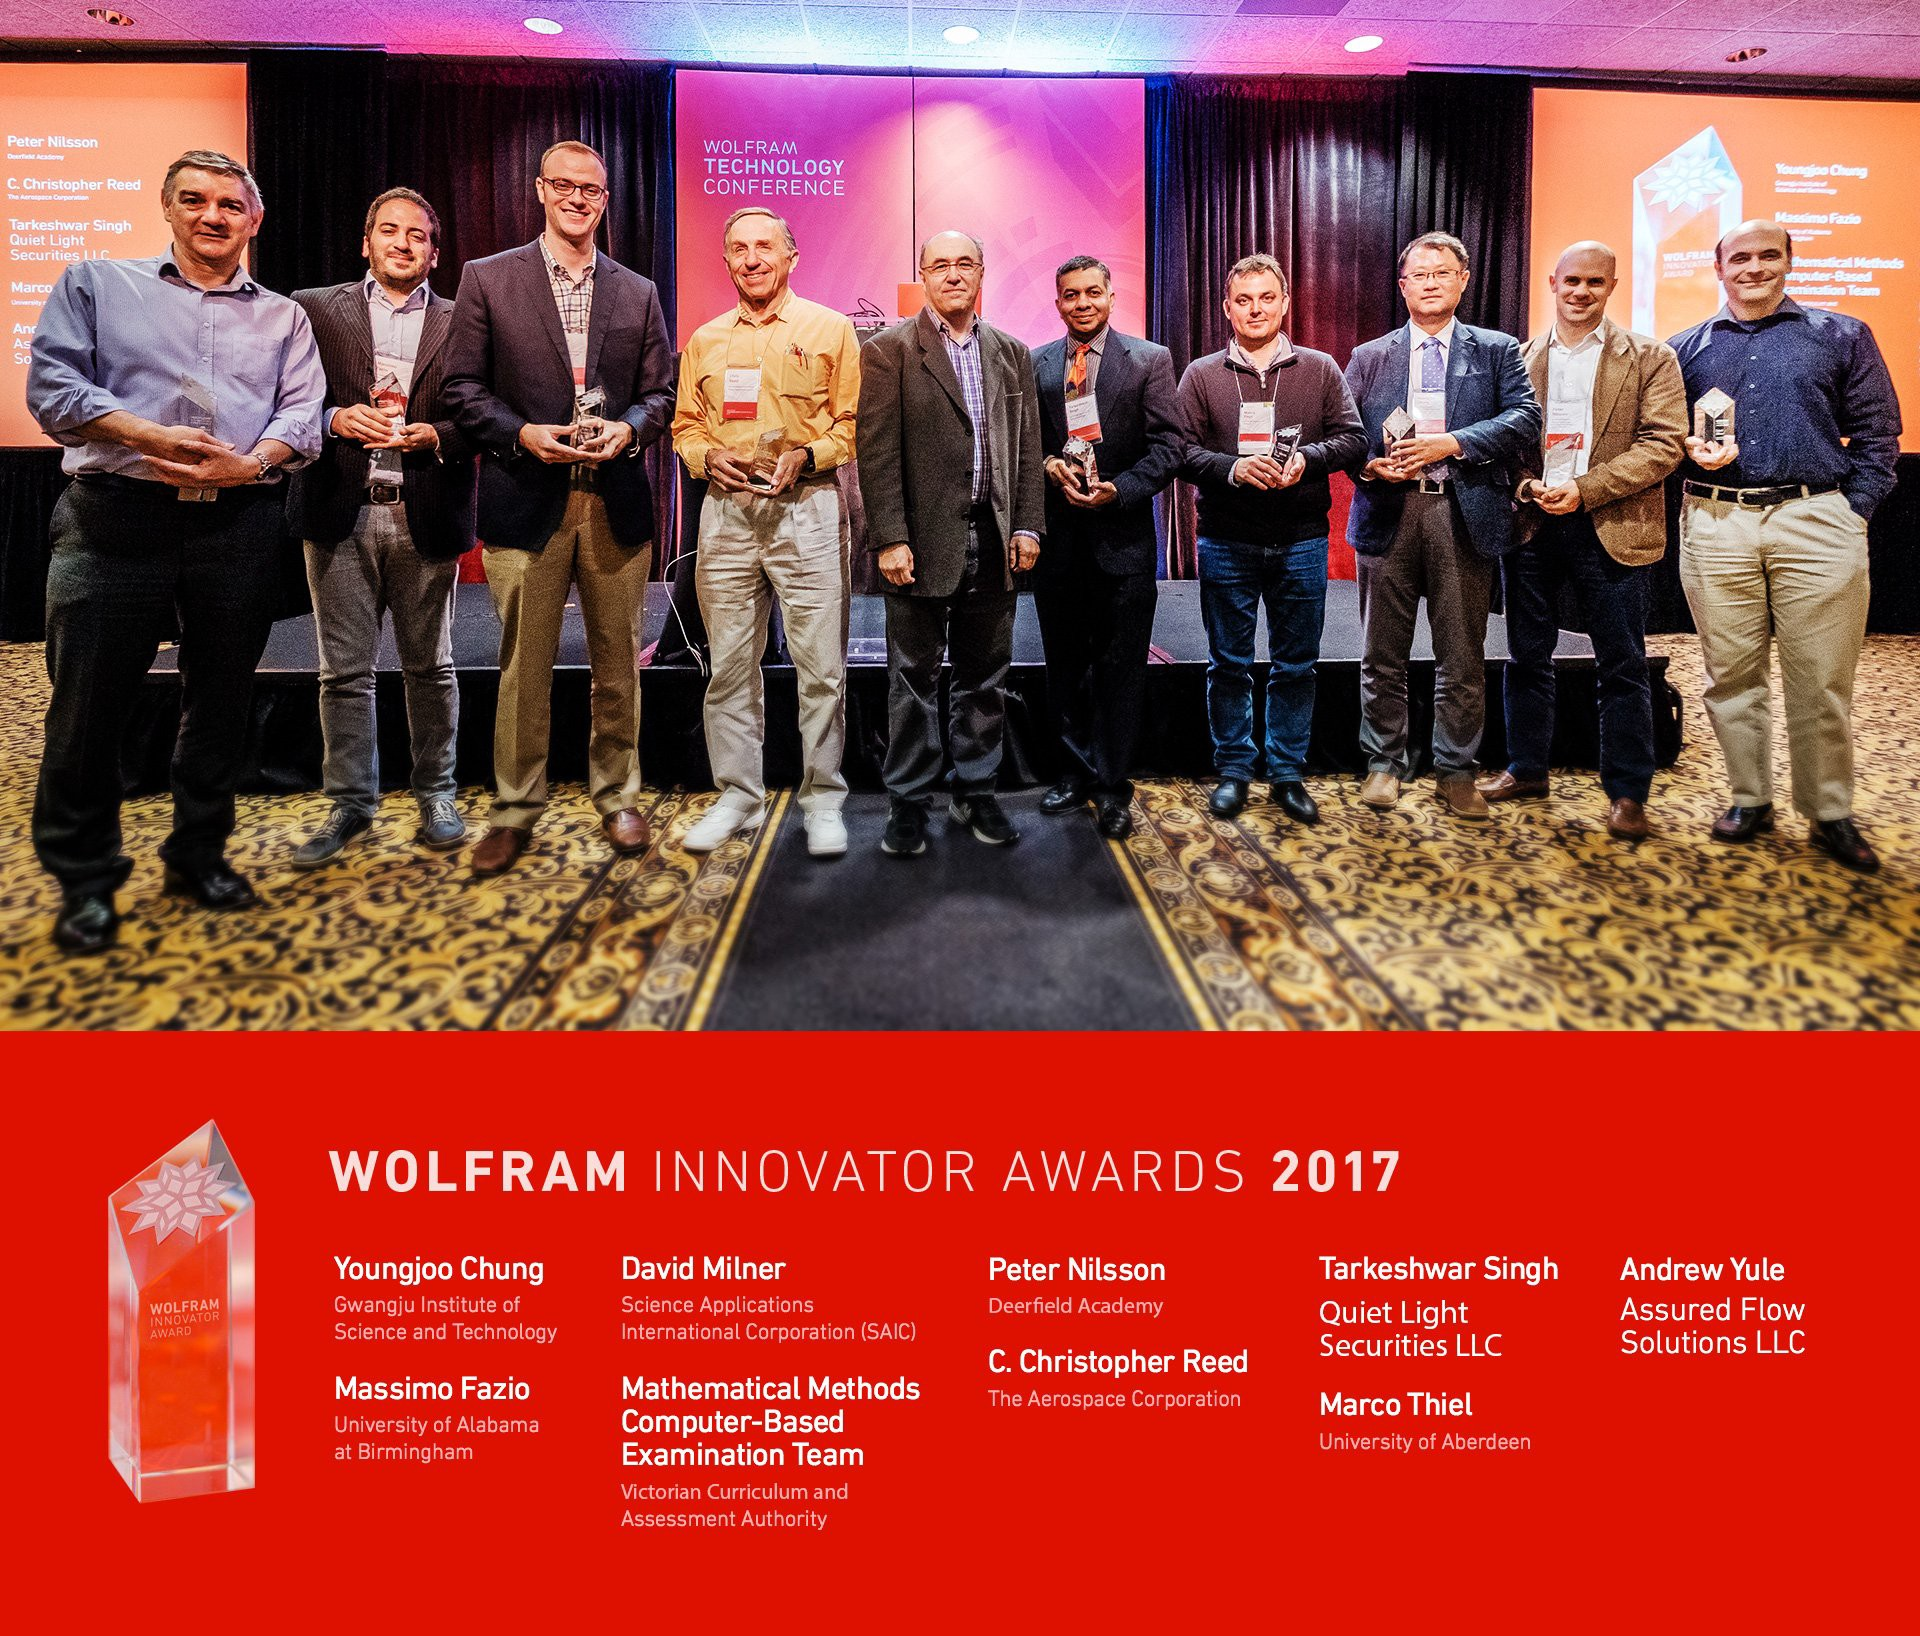 Wolfram Technology Conference Day 4 Innovator Award Winners And